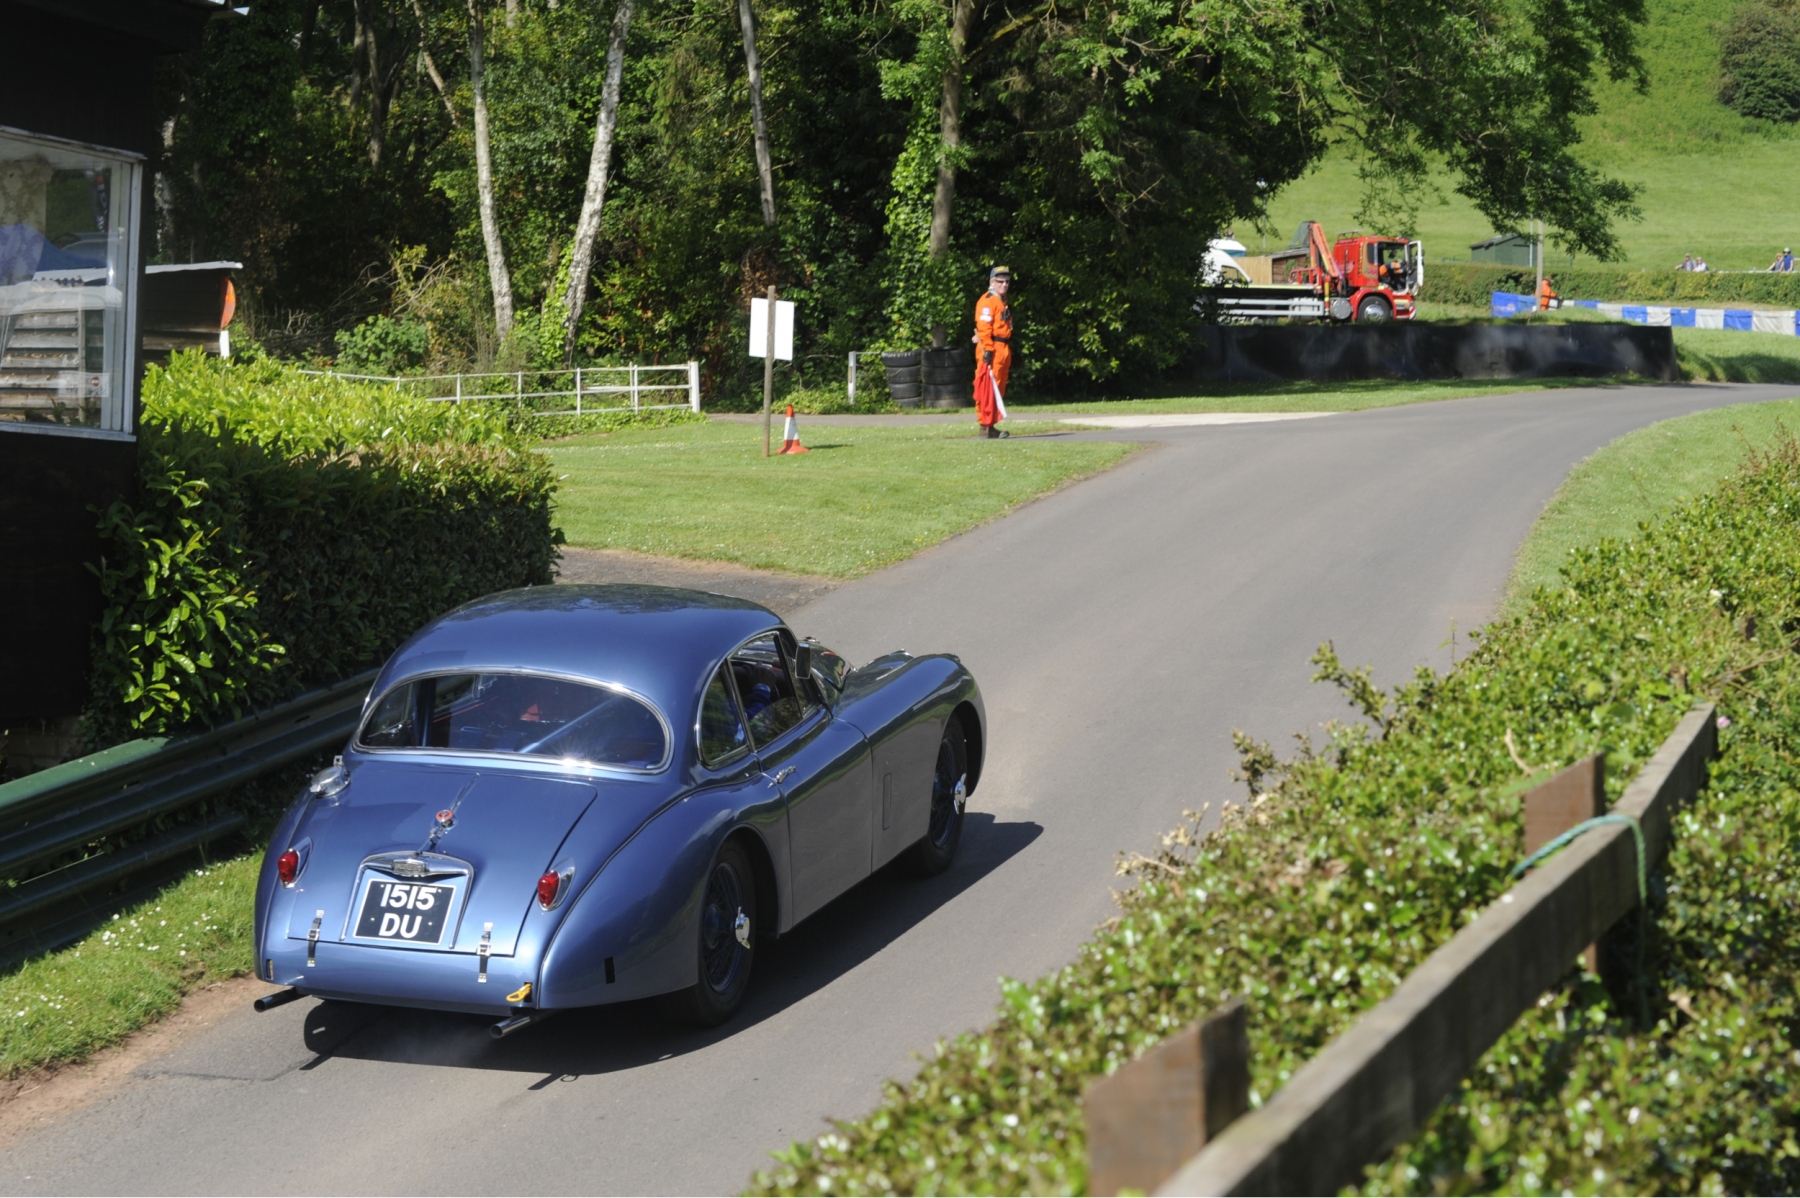 E-type-60-Saturday-photo-by-Abigail-Humphries-92